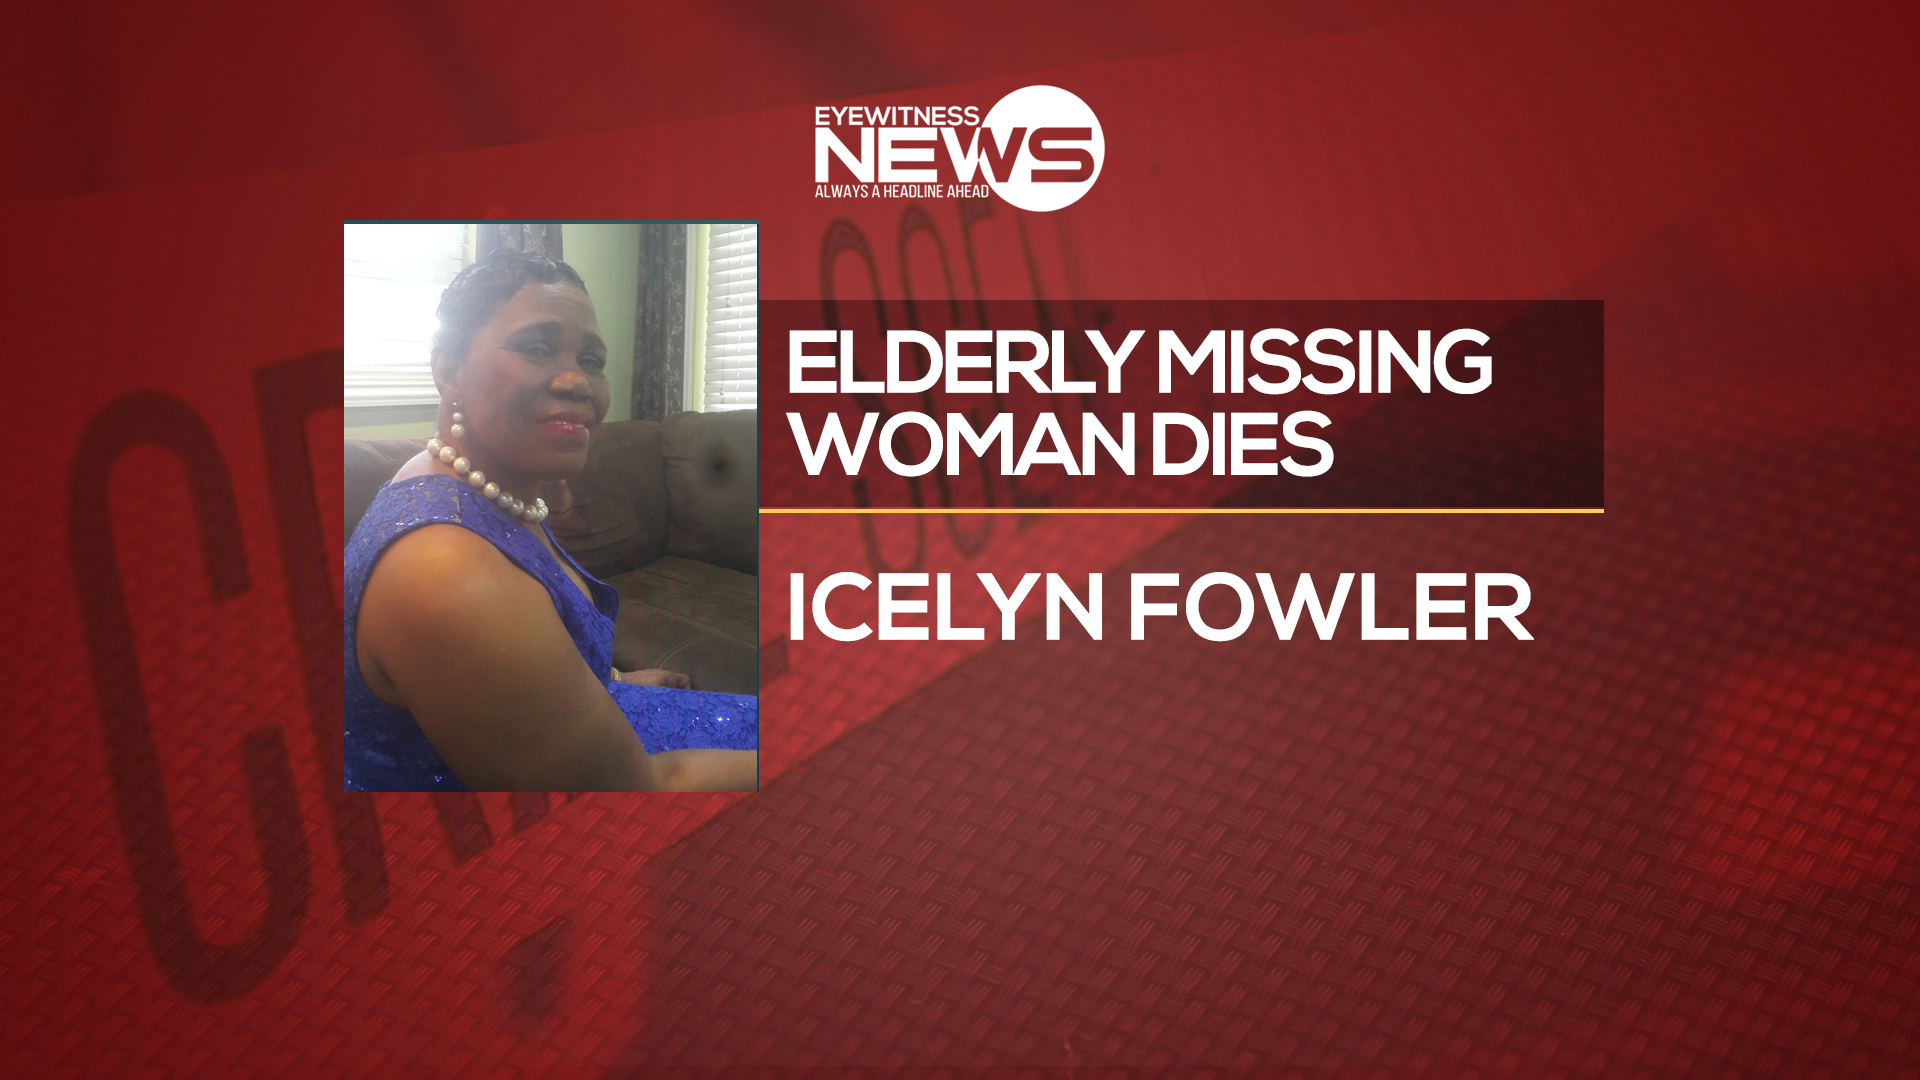 Missing elderly woman found dead